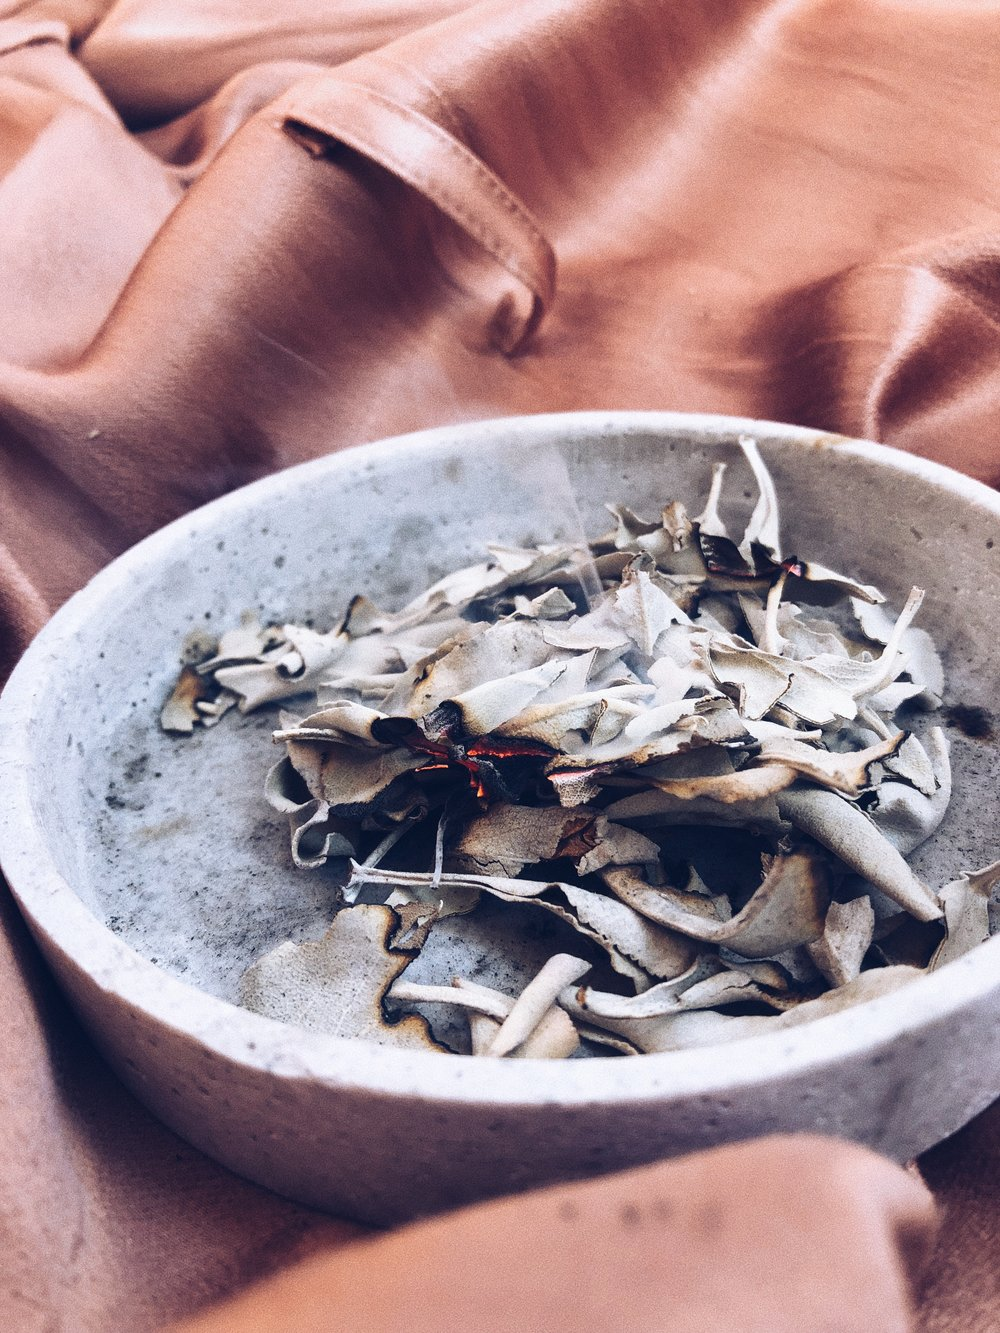 OMG - I ABSOLUTELY LOVE  WHITE SAGE . I ADORE THE SCENT AND WHAT IT DOES. AS YOU MIGHT KNOW SAGE IS CONSIDERED SACRED AND IS USED FOR PURIFYING, CLEANSING AND PROTECTION.  IT WARDS OFF BAD SPIRITS AND NEGATIVE ENERGY SO EVERY TIME AFTER I CLEANED MY APARTMENT, I LIGHT IT UP IN A LITTLE BOWL AND WALK TROUGH MY PLACE AND HAVE IT CLEARED. IT'S A WONDERFUL FEELING. -T